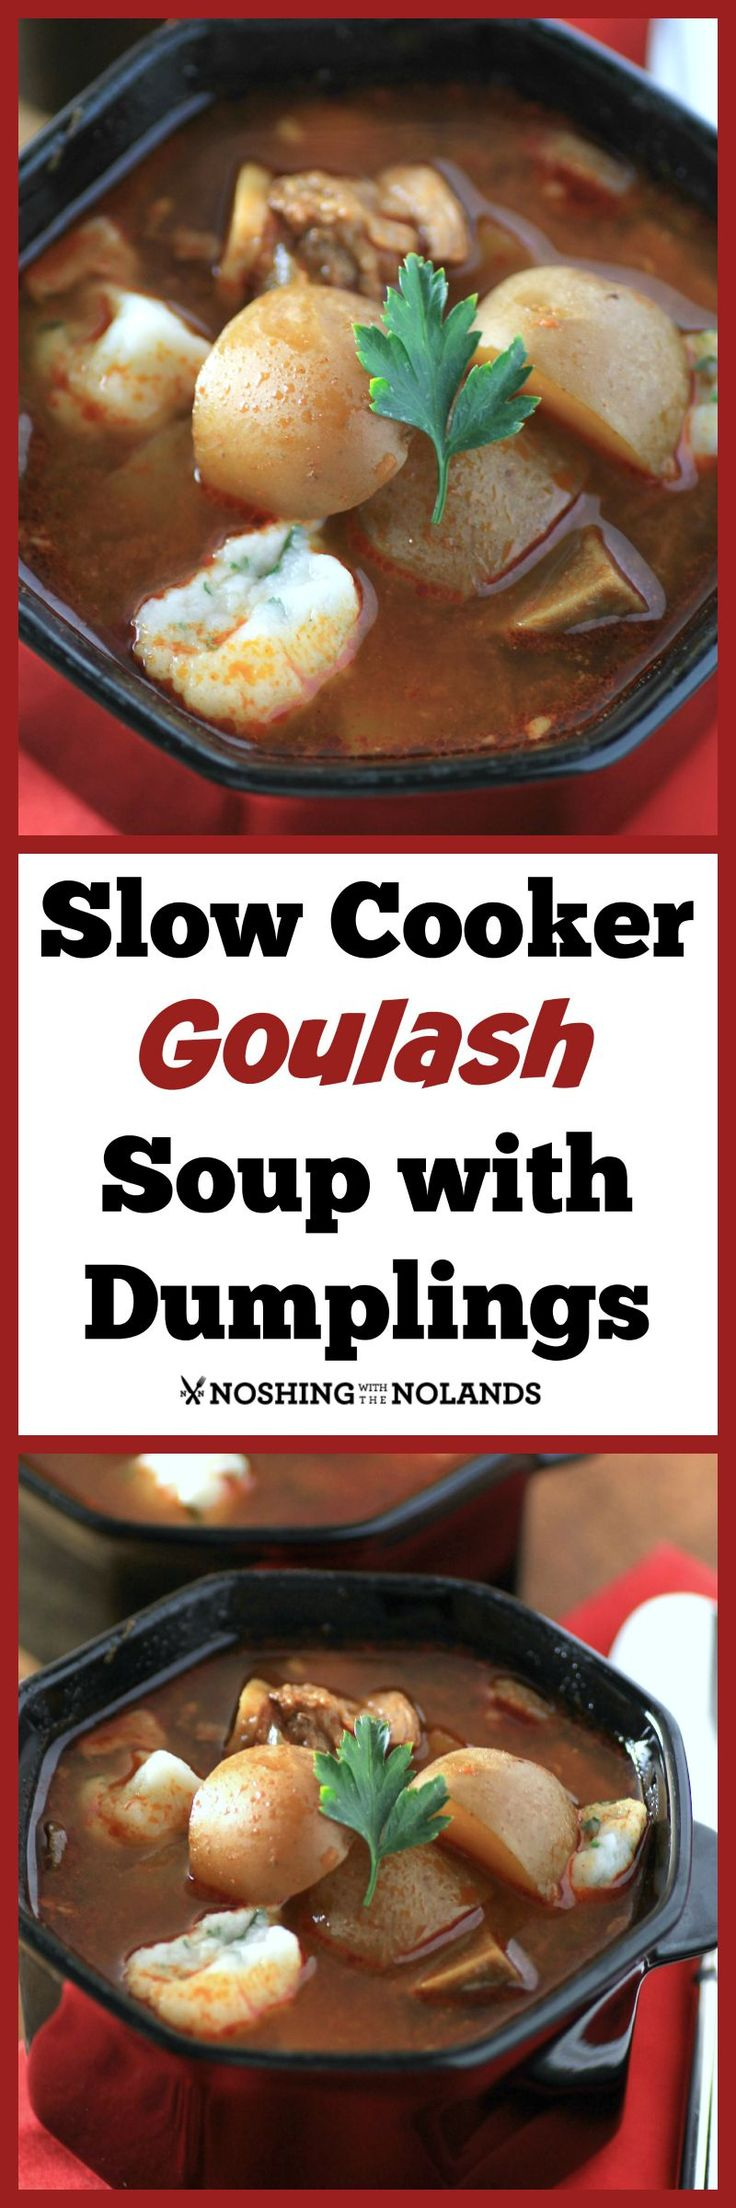 Slow Cooker Goulash Soup with Dumplings from Noshing with the Nolands - A delicious soup recipe that will warm you up from the inside out. #LittlePotatoes